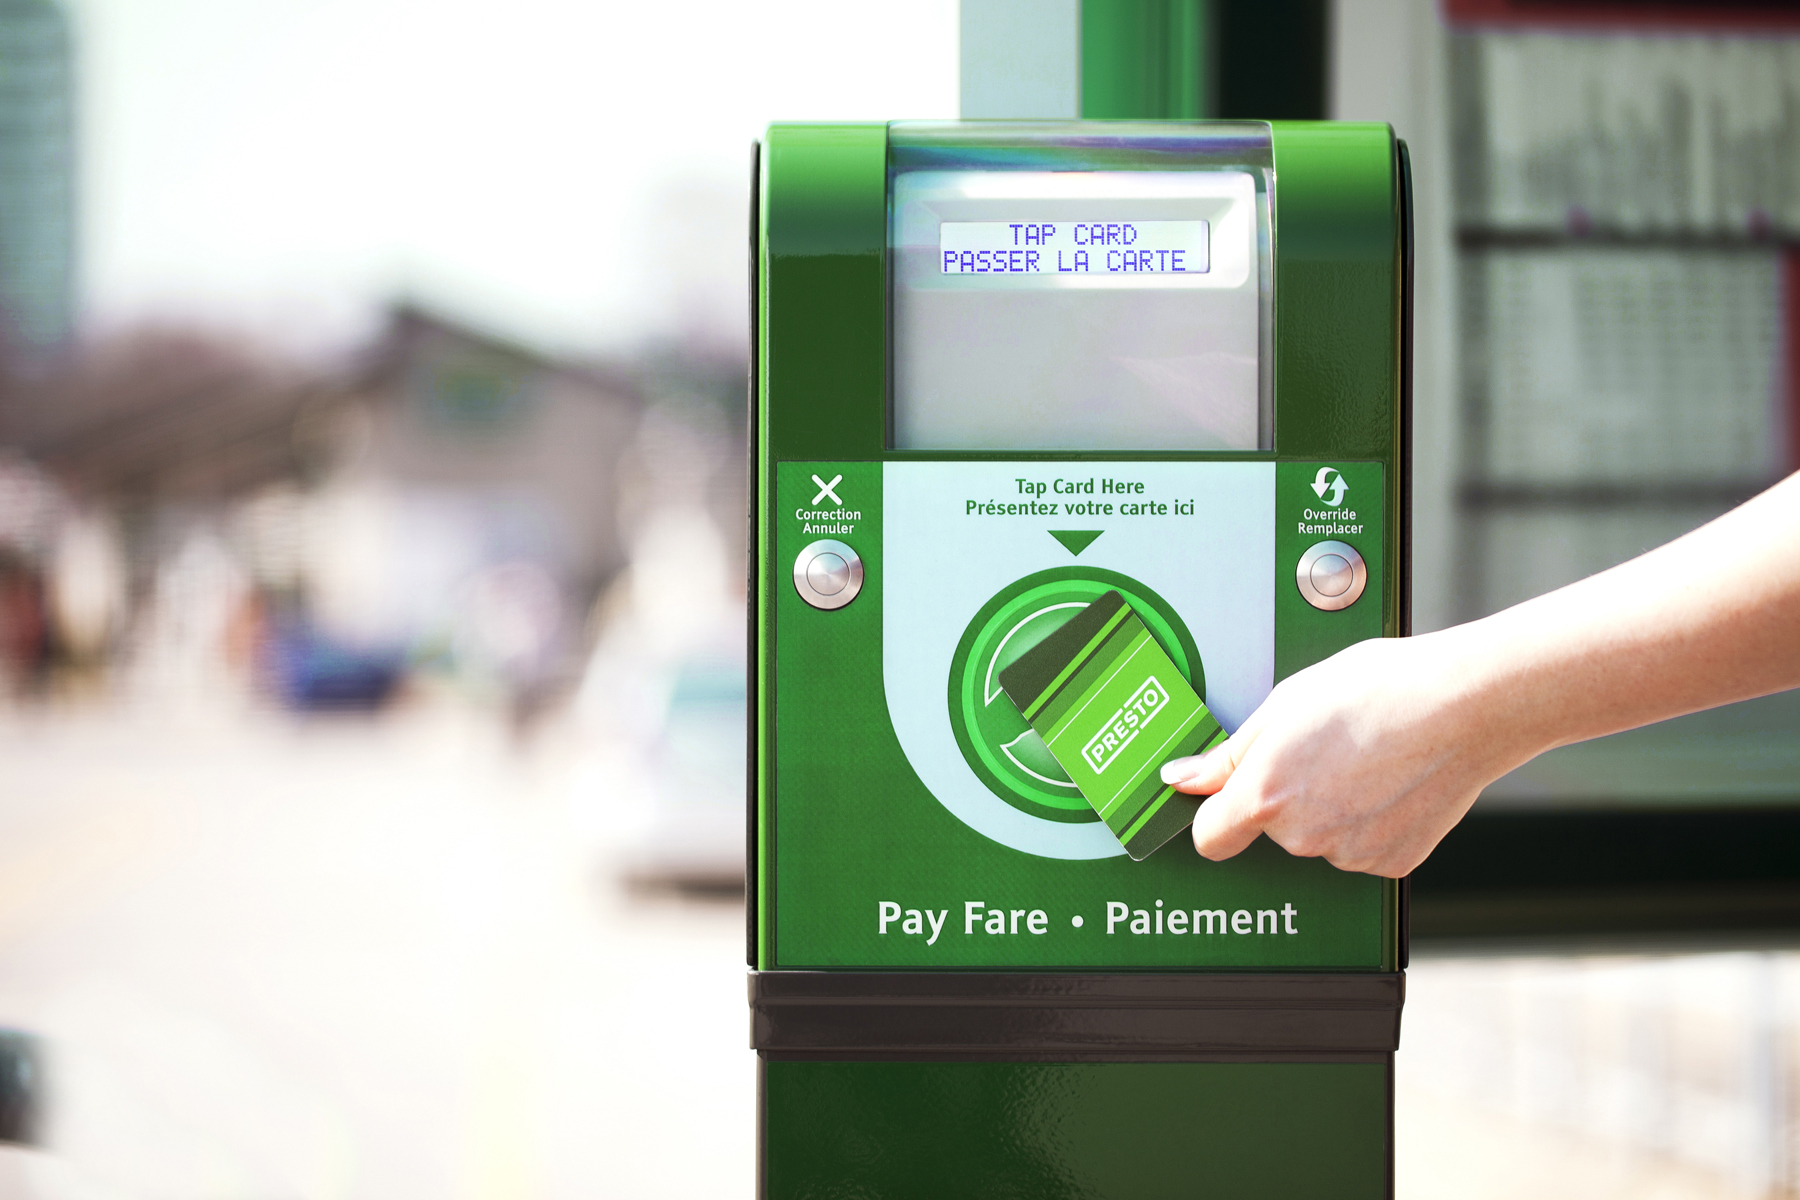 Long-awaited Presto machines may come to campus this month